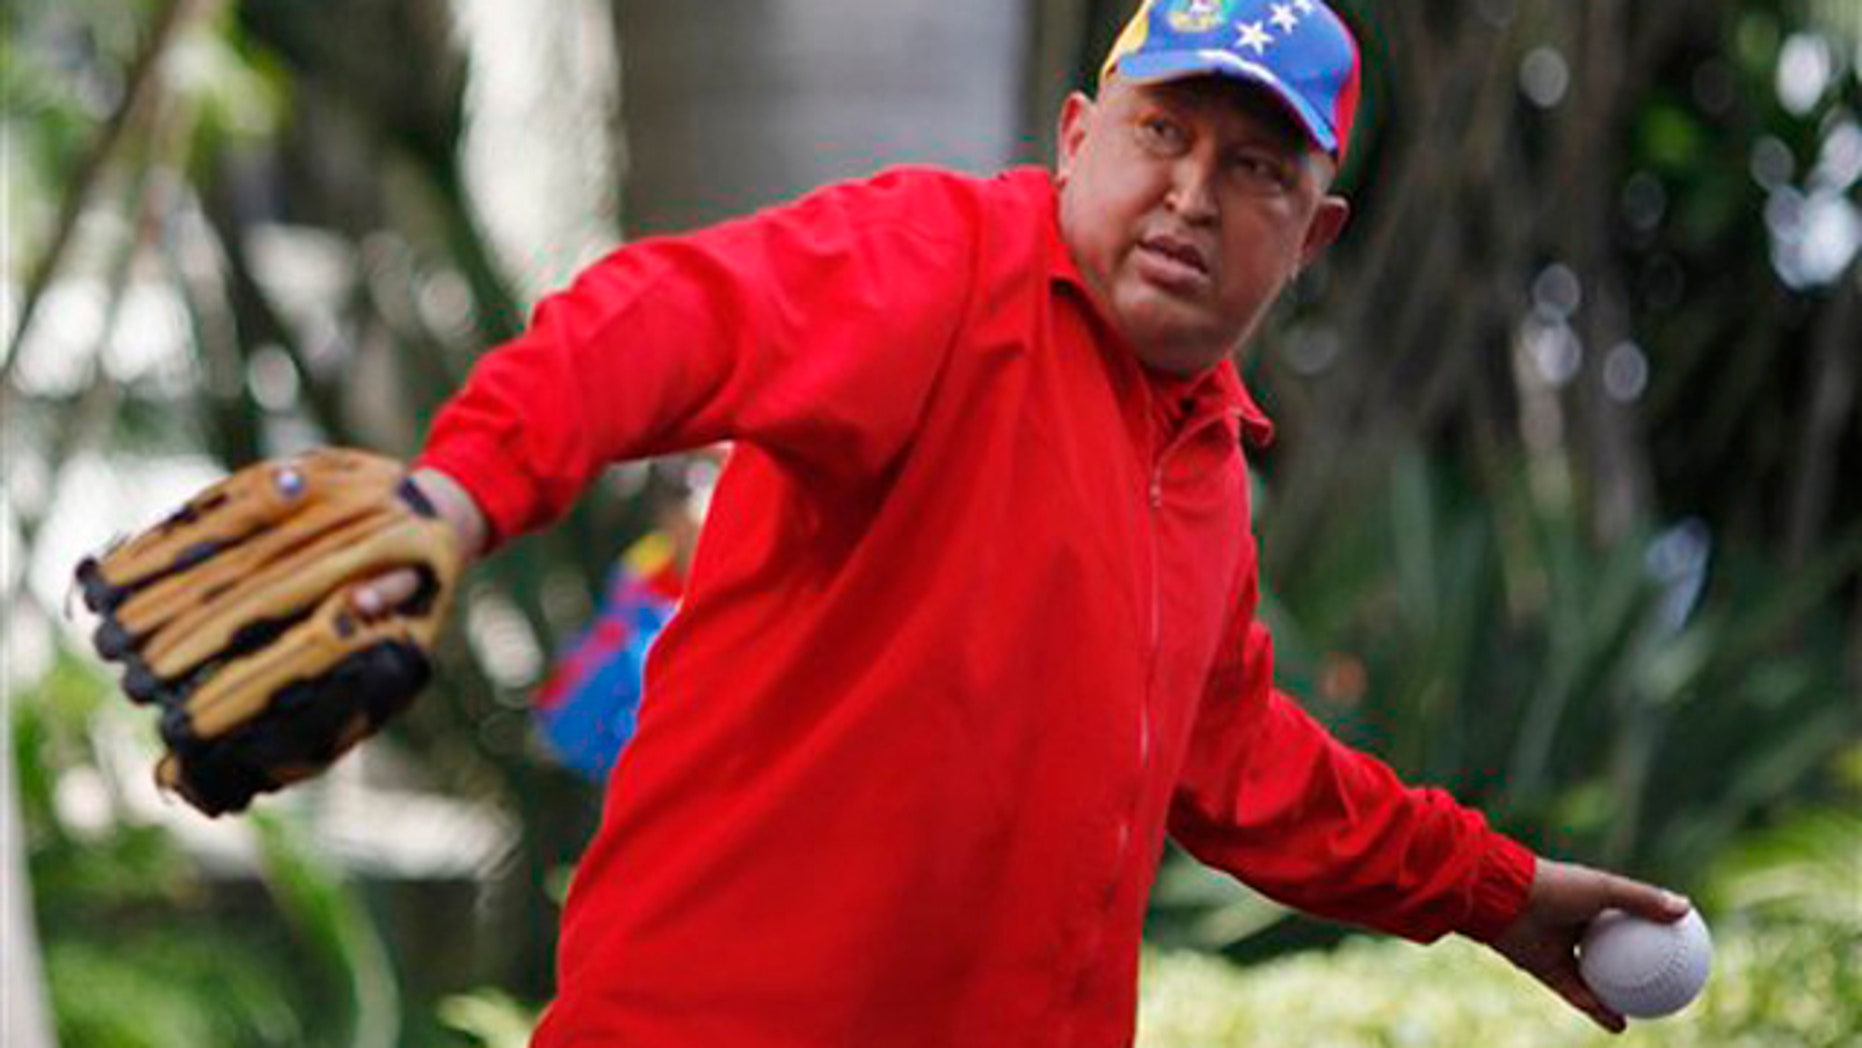 In this photo released by Miraflores Press Office, Venezuela's President Hugo Chavez throws a softball after giving a live address on state TV at Miraflores presidential palace in Caracas, Venezuela, Thursday Sept. 29, 2011.